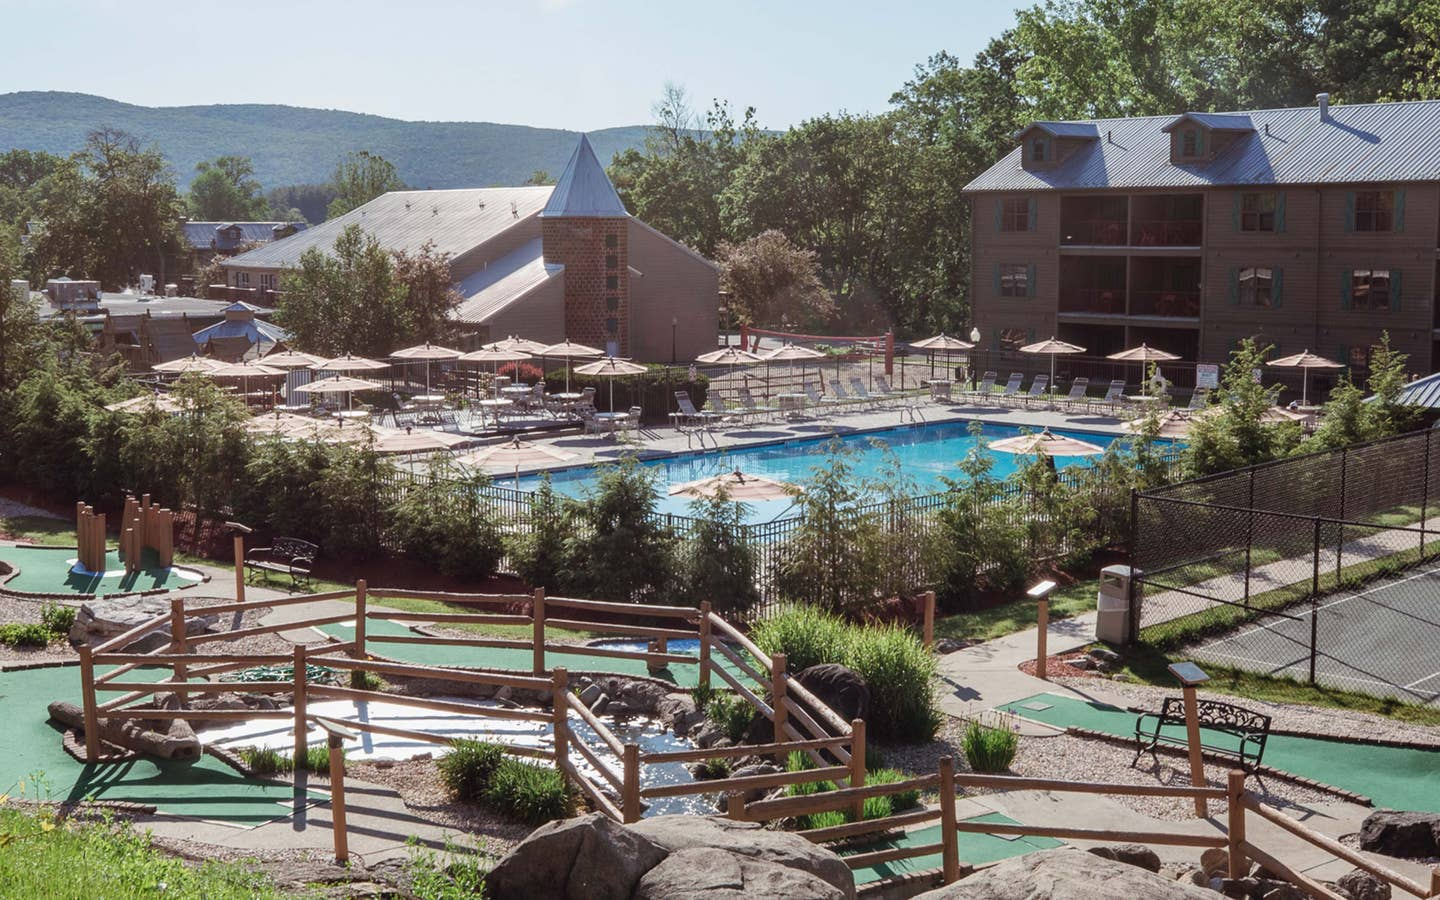 Property shot of Oak n' Spruce Resort with an outdoor pool, mini golf course and property building in South Lee, Massachusetts.